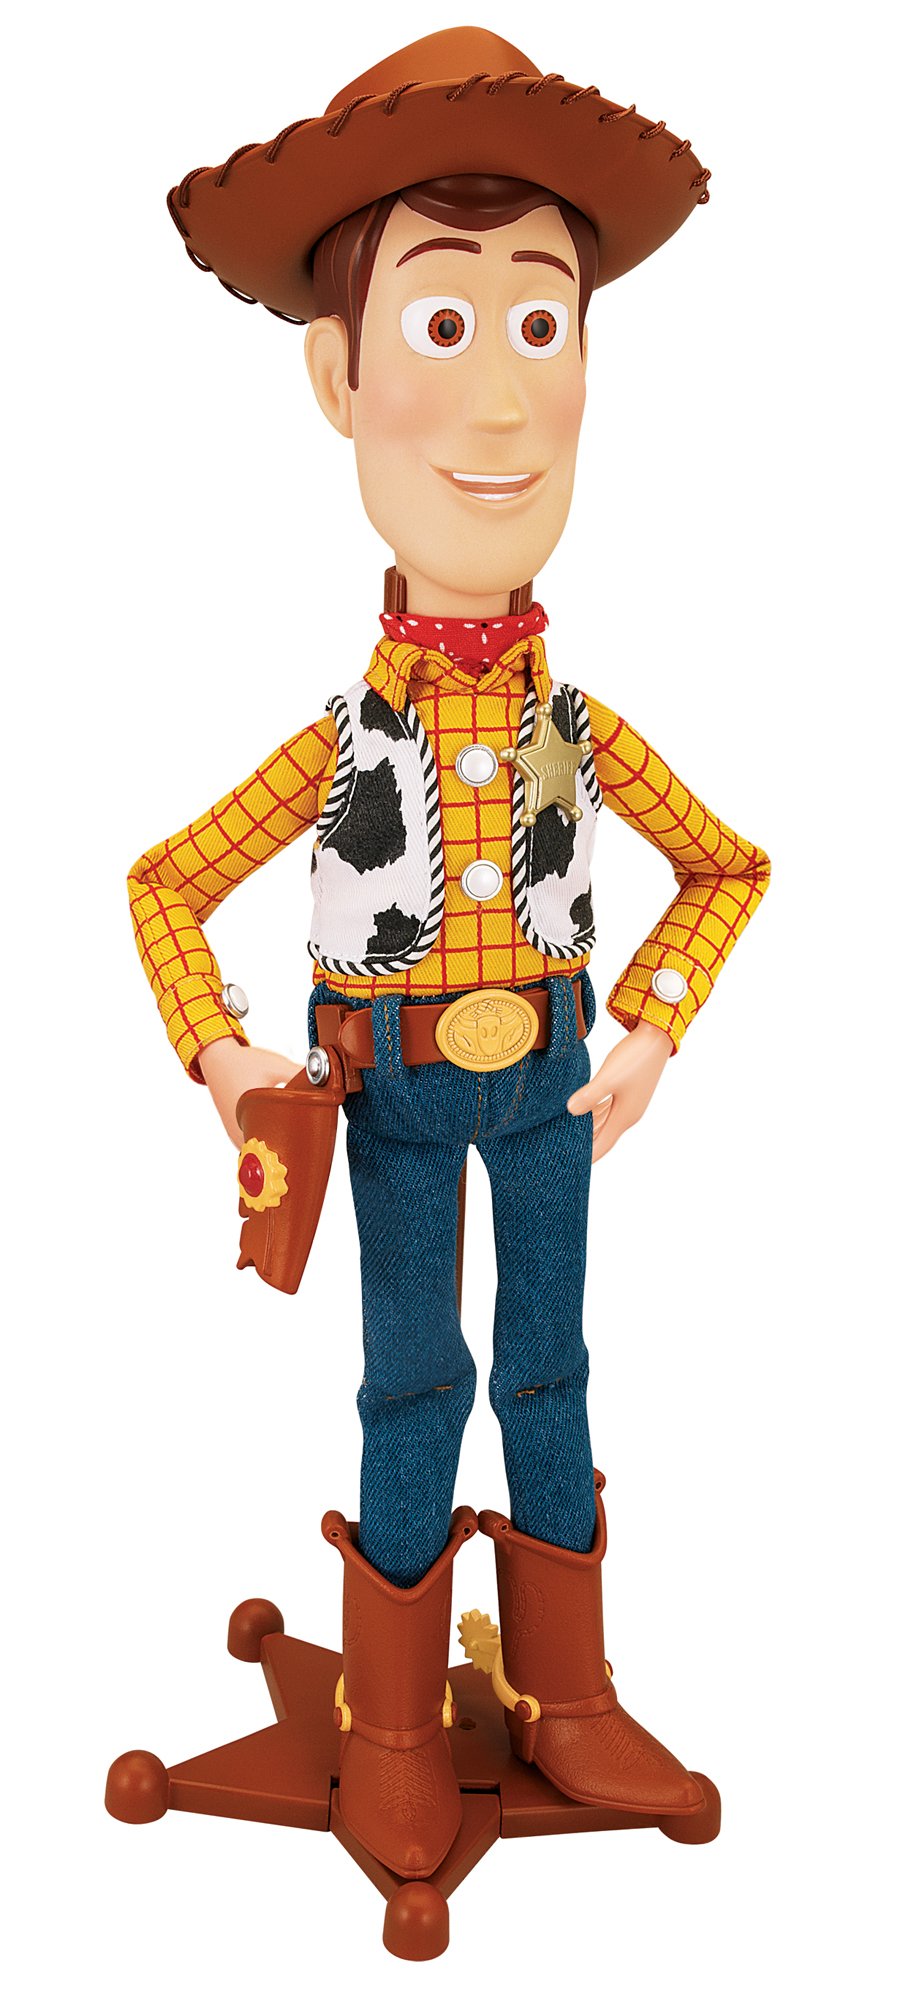 Toy Story Cracked Magazine: Toy Story Merchandise Wiki